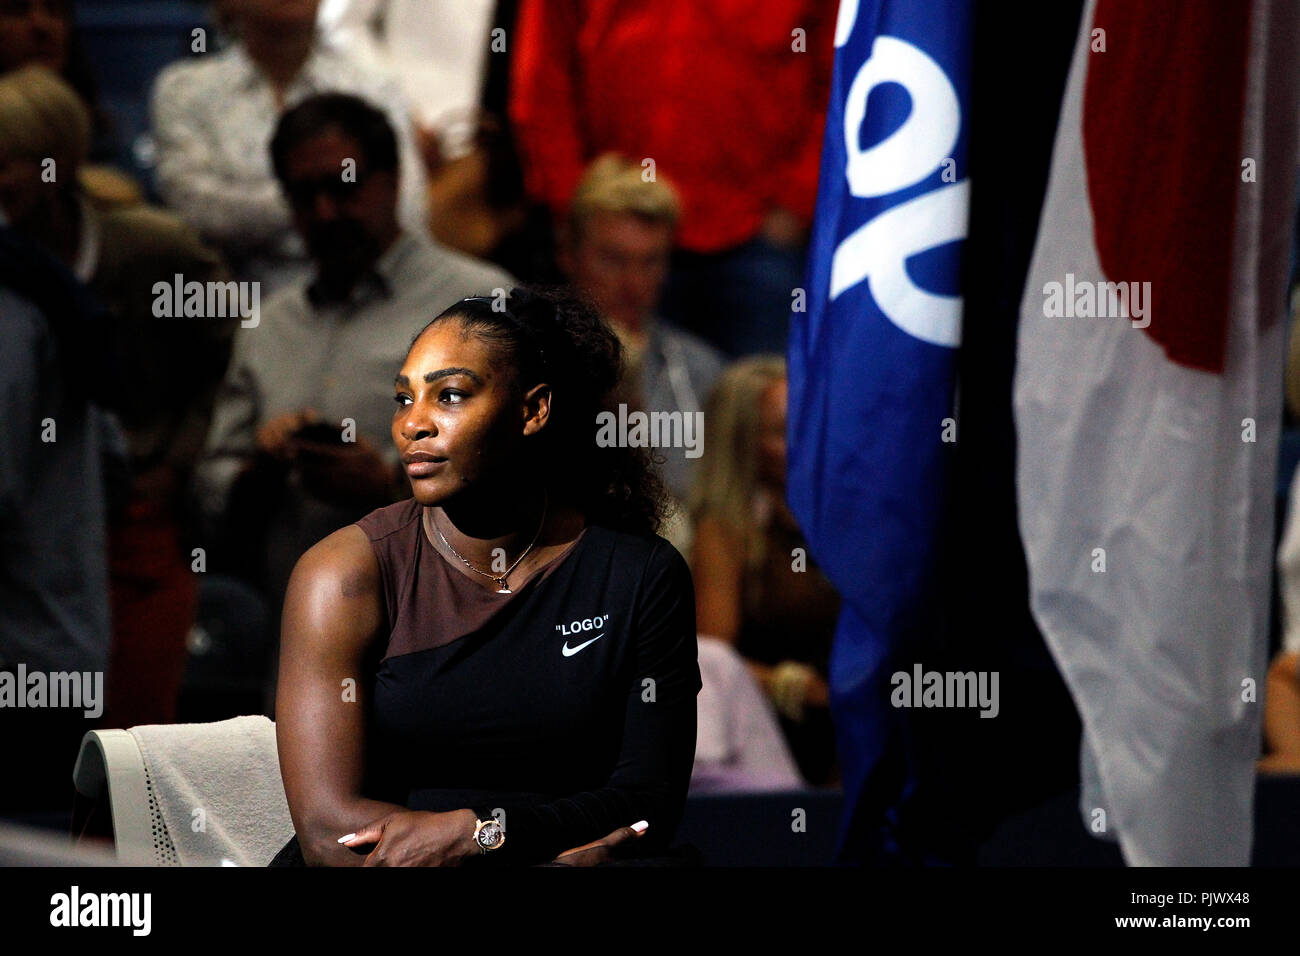 New York, USA. 8th September 2018.  US Open Tennis:   Serena Williams moments after her loss to Naomi Osaka of Japan in the US Open women's final.   Williams was penalized a game at 4-3 in the final set, which added controversy to the match. Credit: Adam Stoltman/Alamy Live News - Stock Image